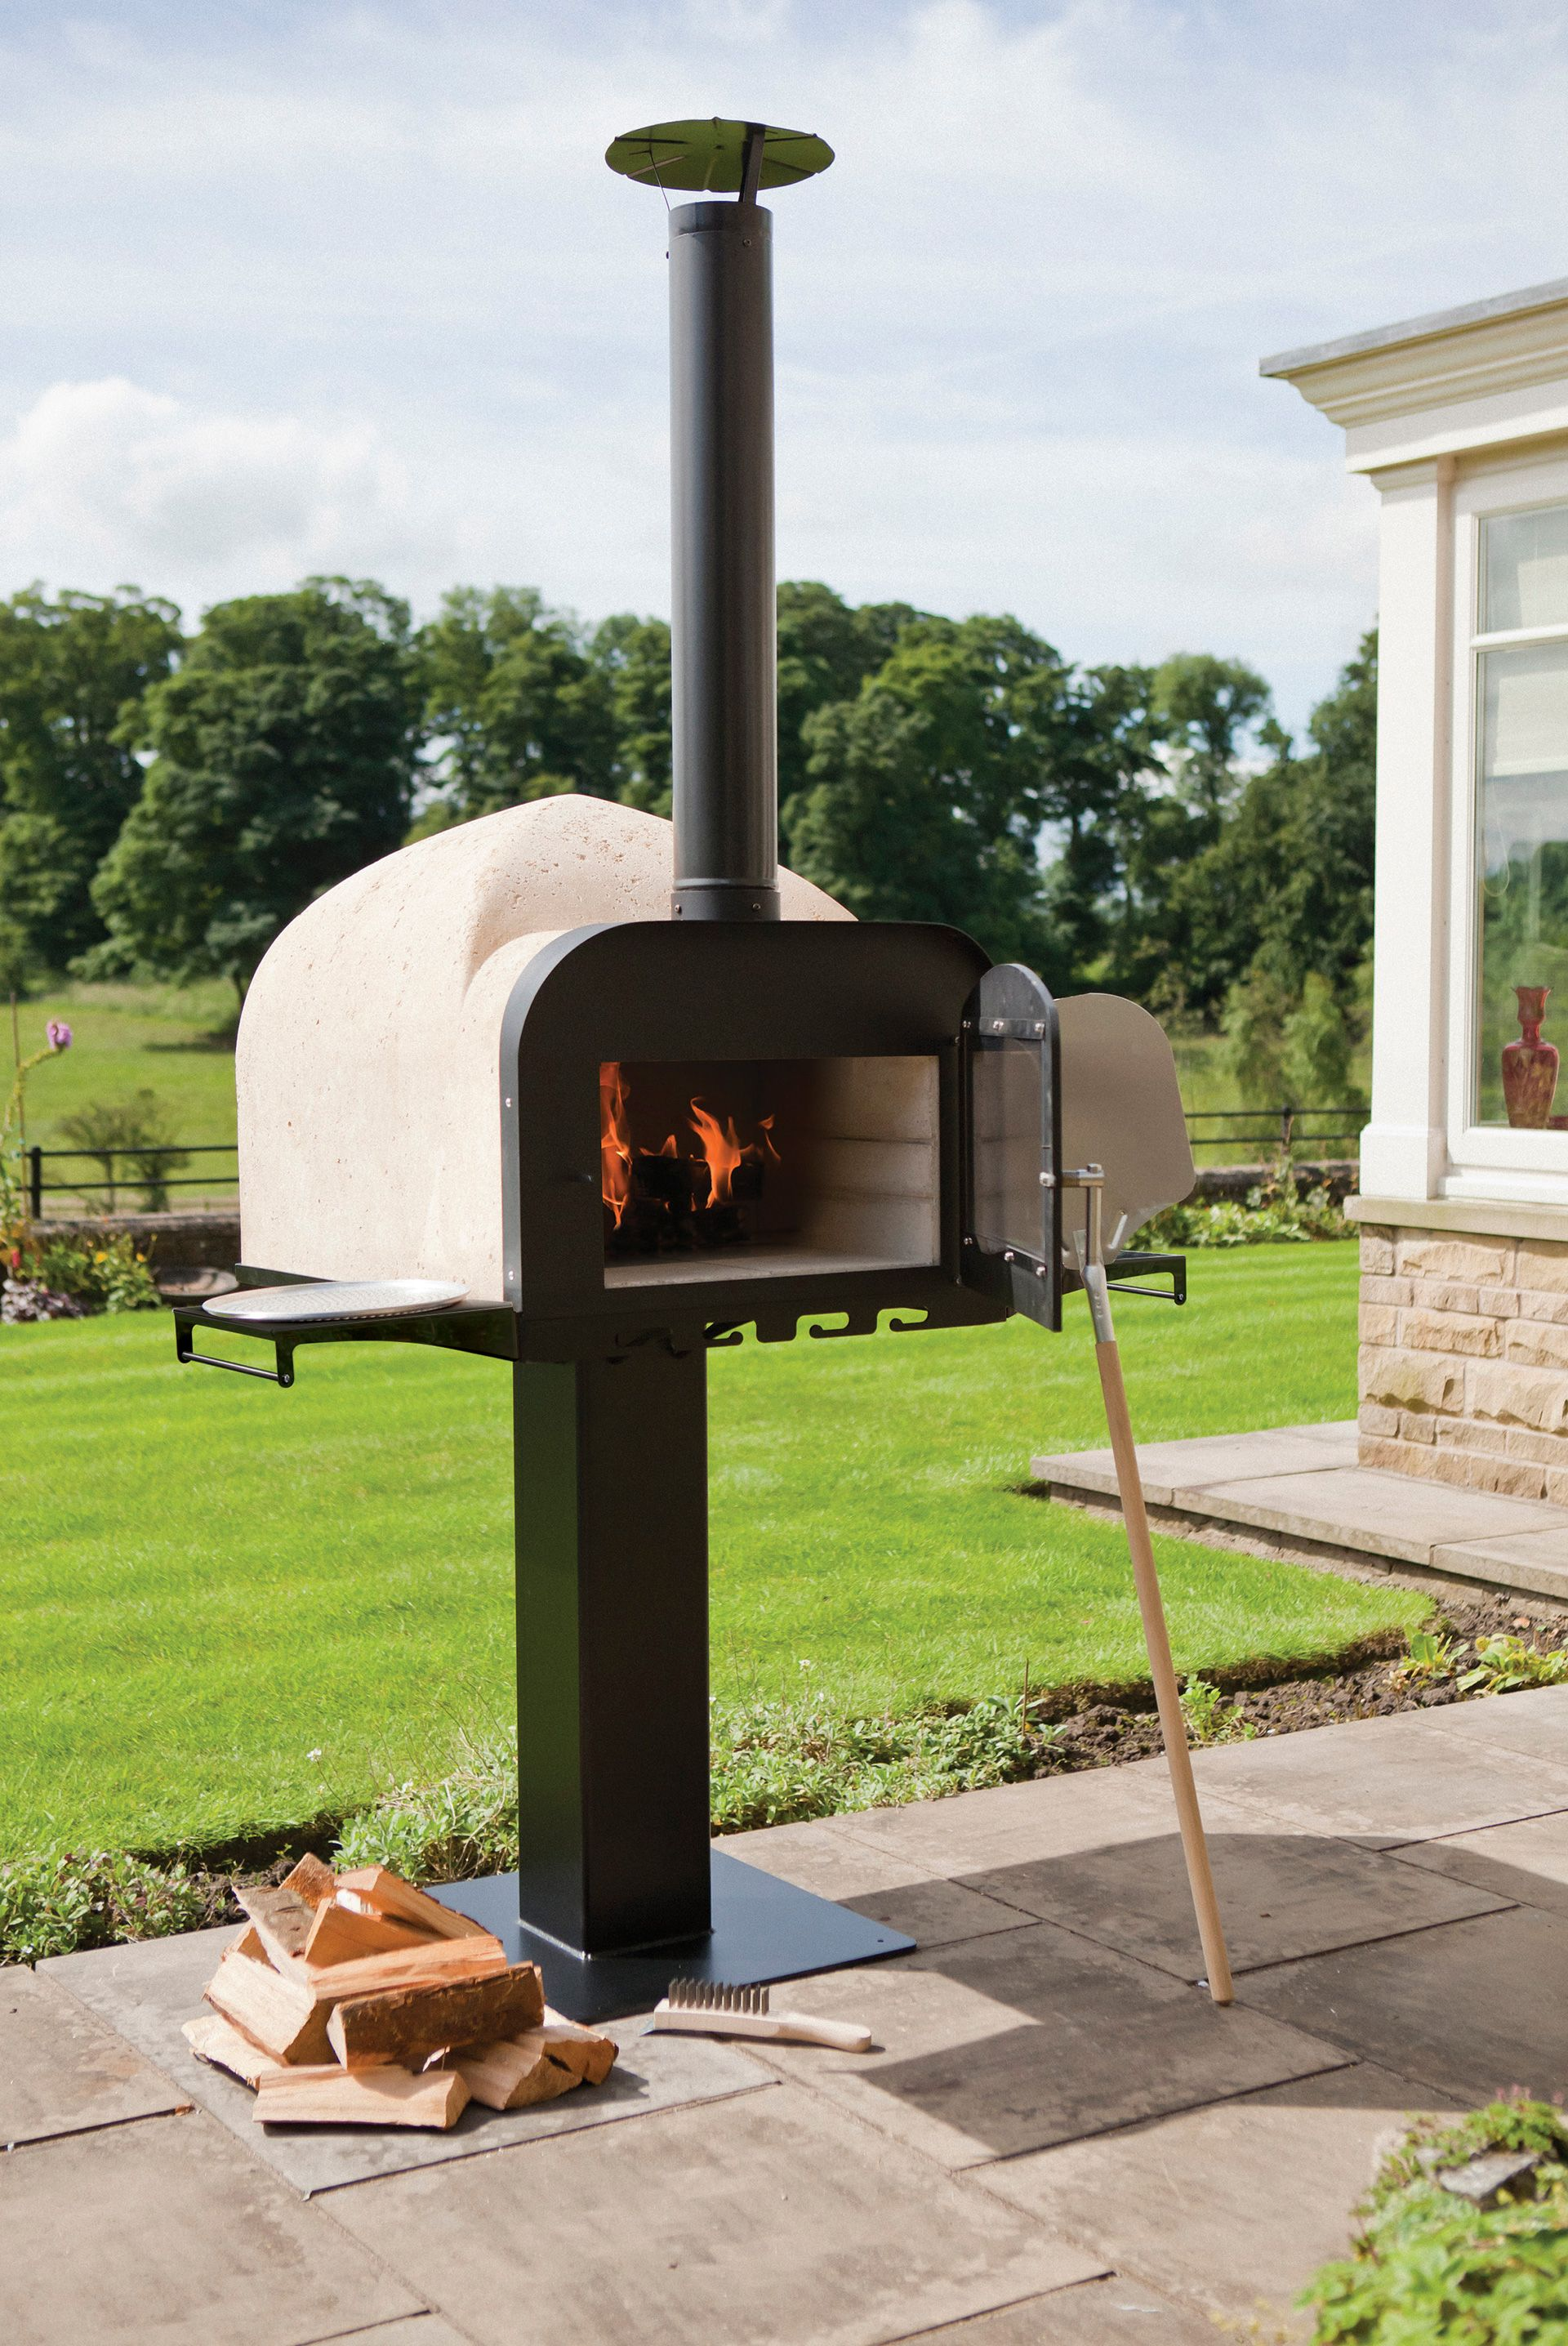 Fire Stone Cooking Demonstration At Merritt Fryers Forno De Pizza Fornos Arquitetura